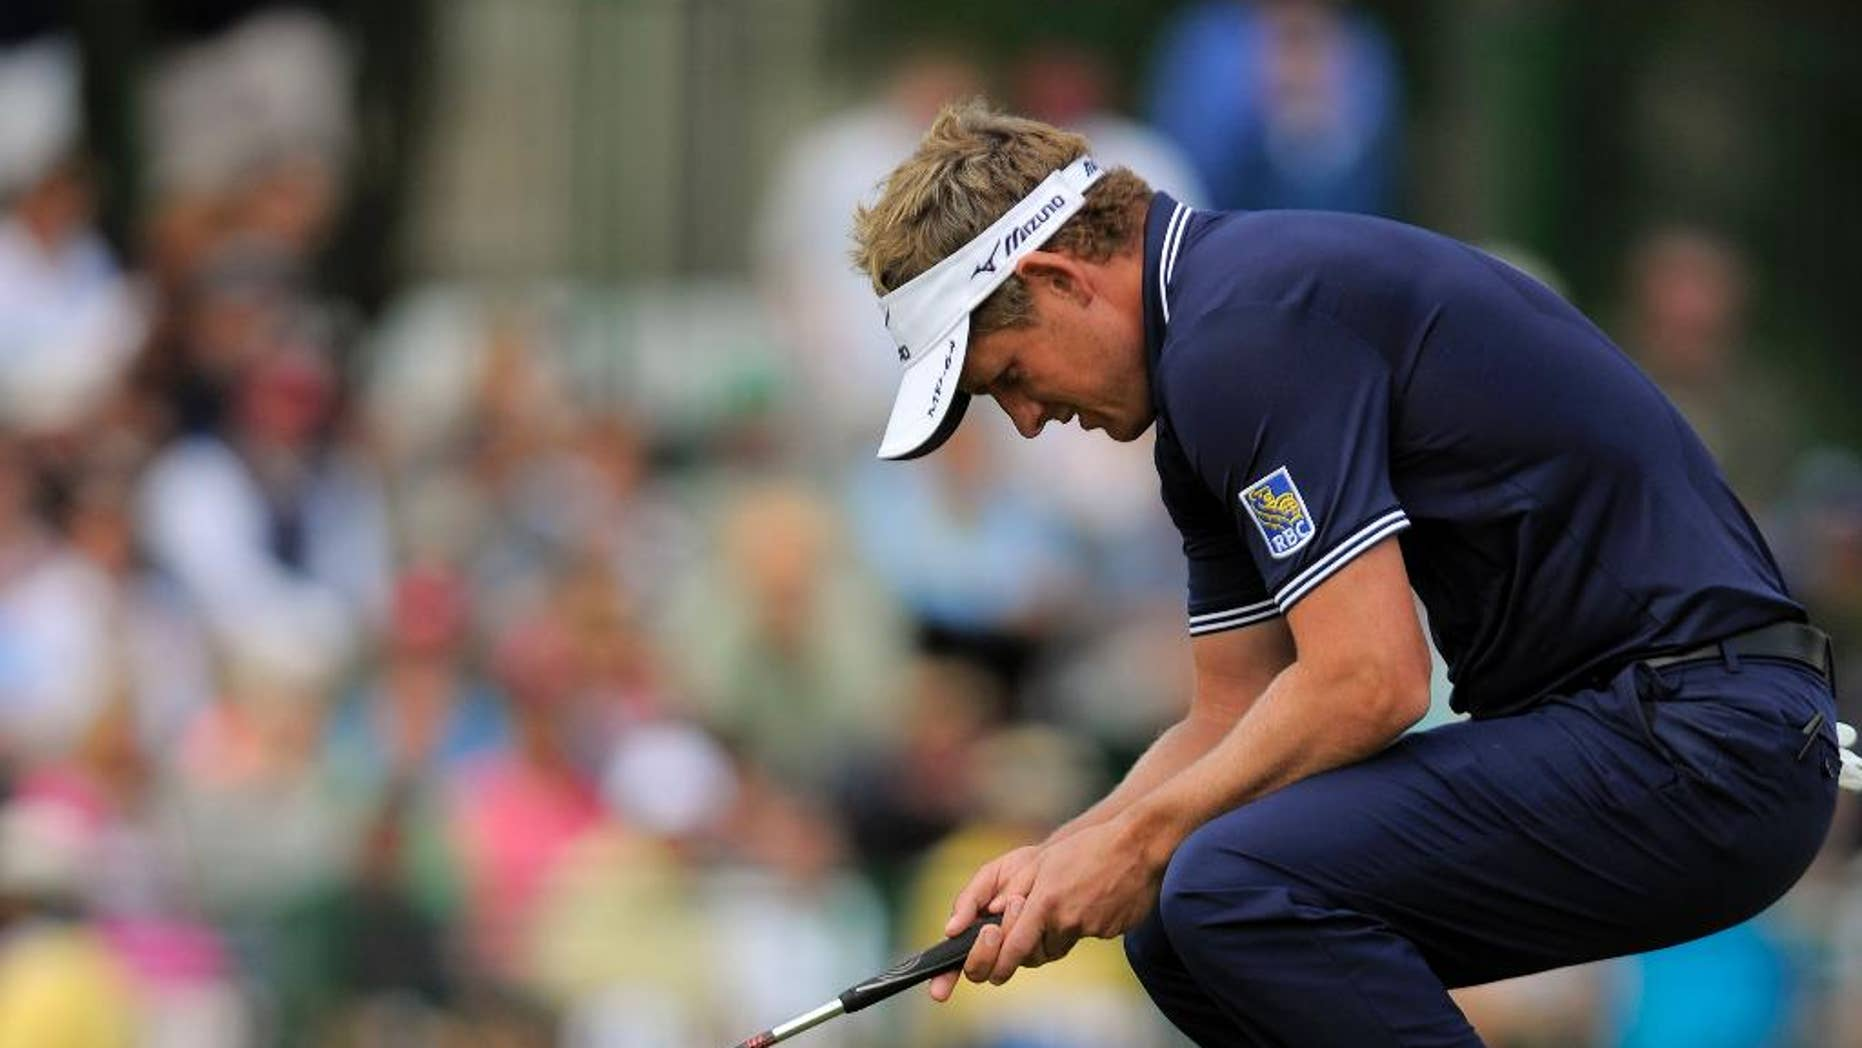 FILE - In this April 20, 2014, file photo, Luke Donald, of England, reacts after missing a birdie putt on the 17th green during the final round of the RBC Heritage golf tournament in Hilton Head Island, S.C. Some of the biggest stars in Europe are starting their year in Abu Dhabi on Thursday. Donald is in Honolulu. That's by design. This year is about getting back to his strengths, and getting back to his roots. Donald could pick off a few European Tour requirements, but he tends to play well during the West Coast Swing on the PGA Tour, and that's where he will start. And thus begins what he hopes will be the road back at the Sony Open. (AP Photo/Stephen B. Morton, File)